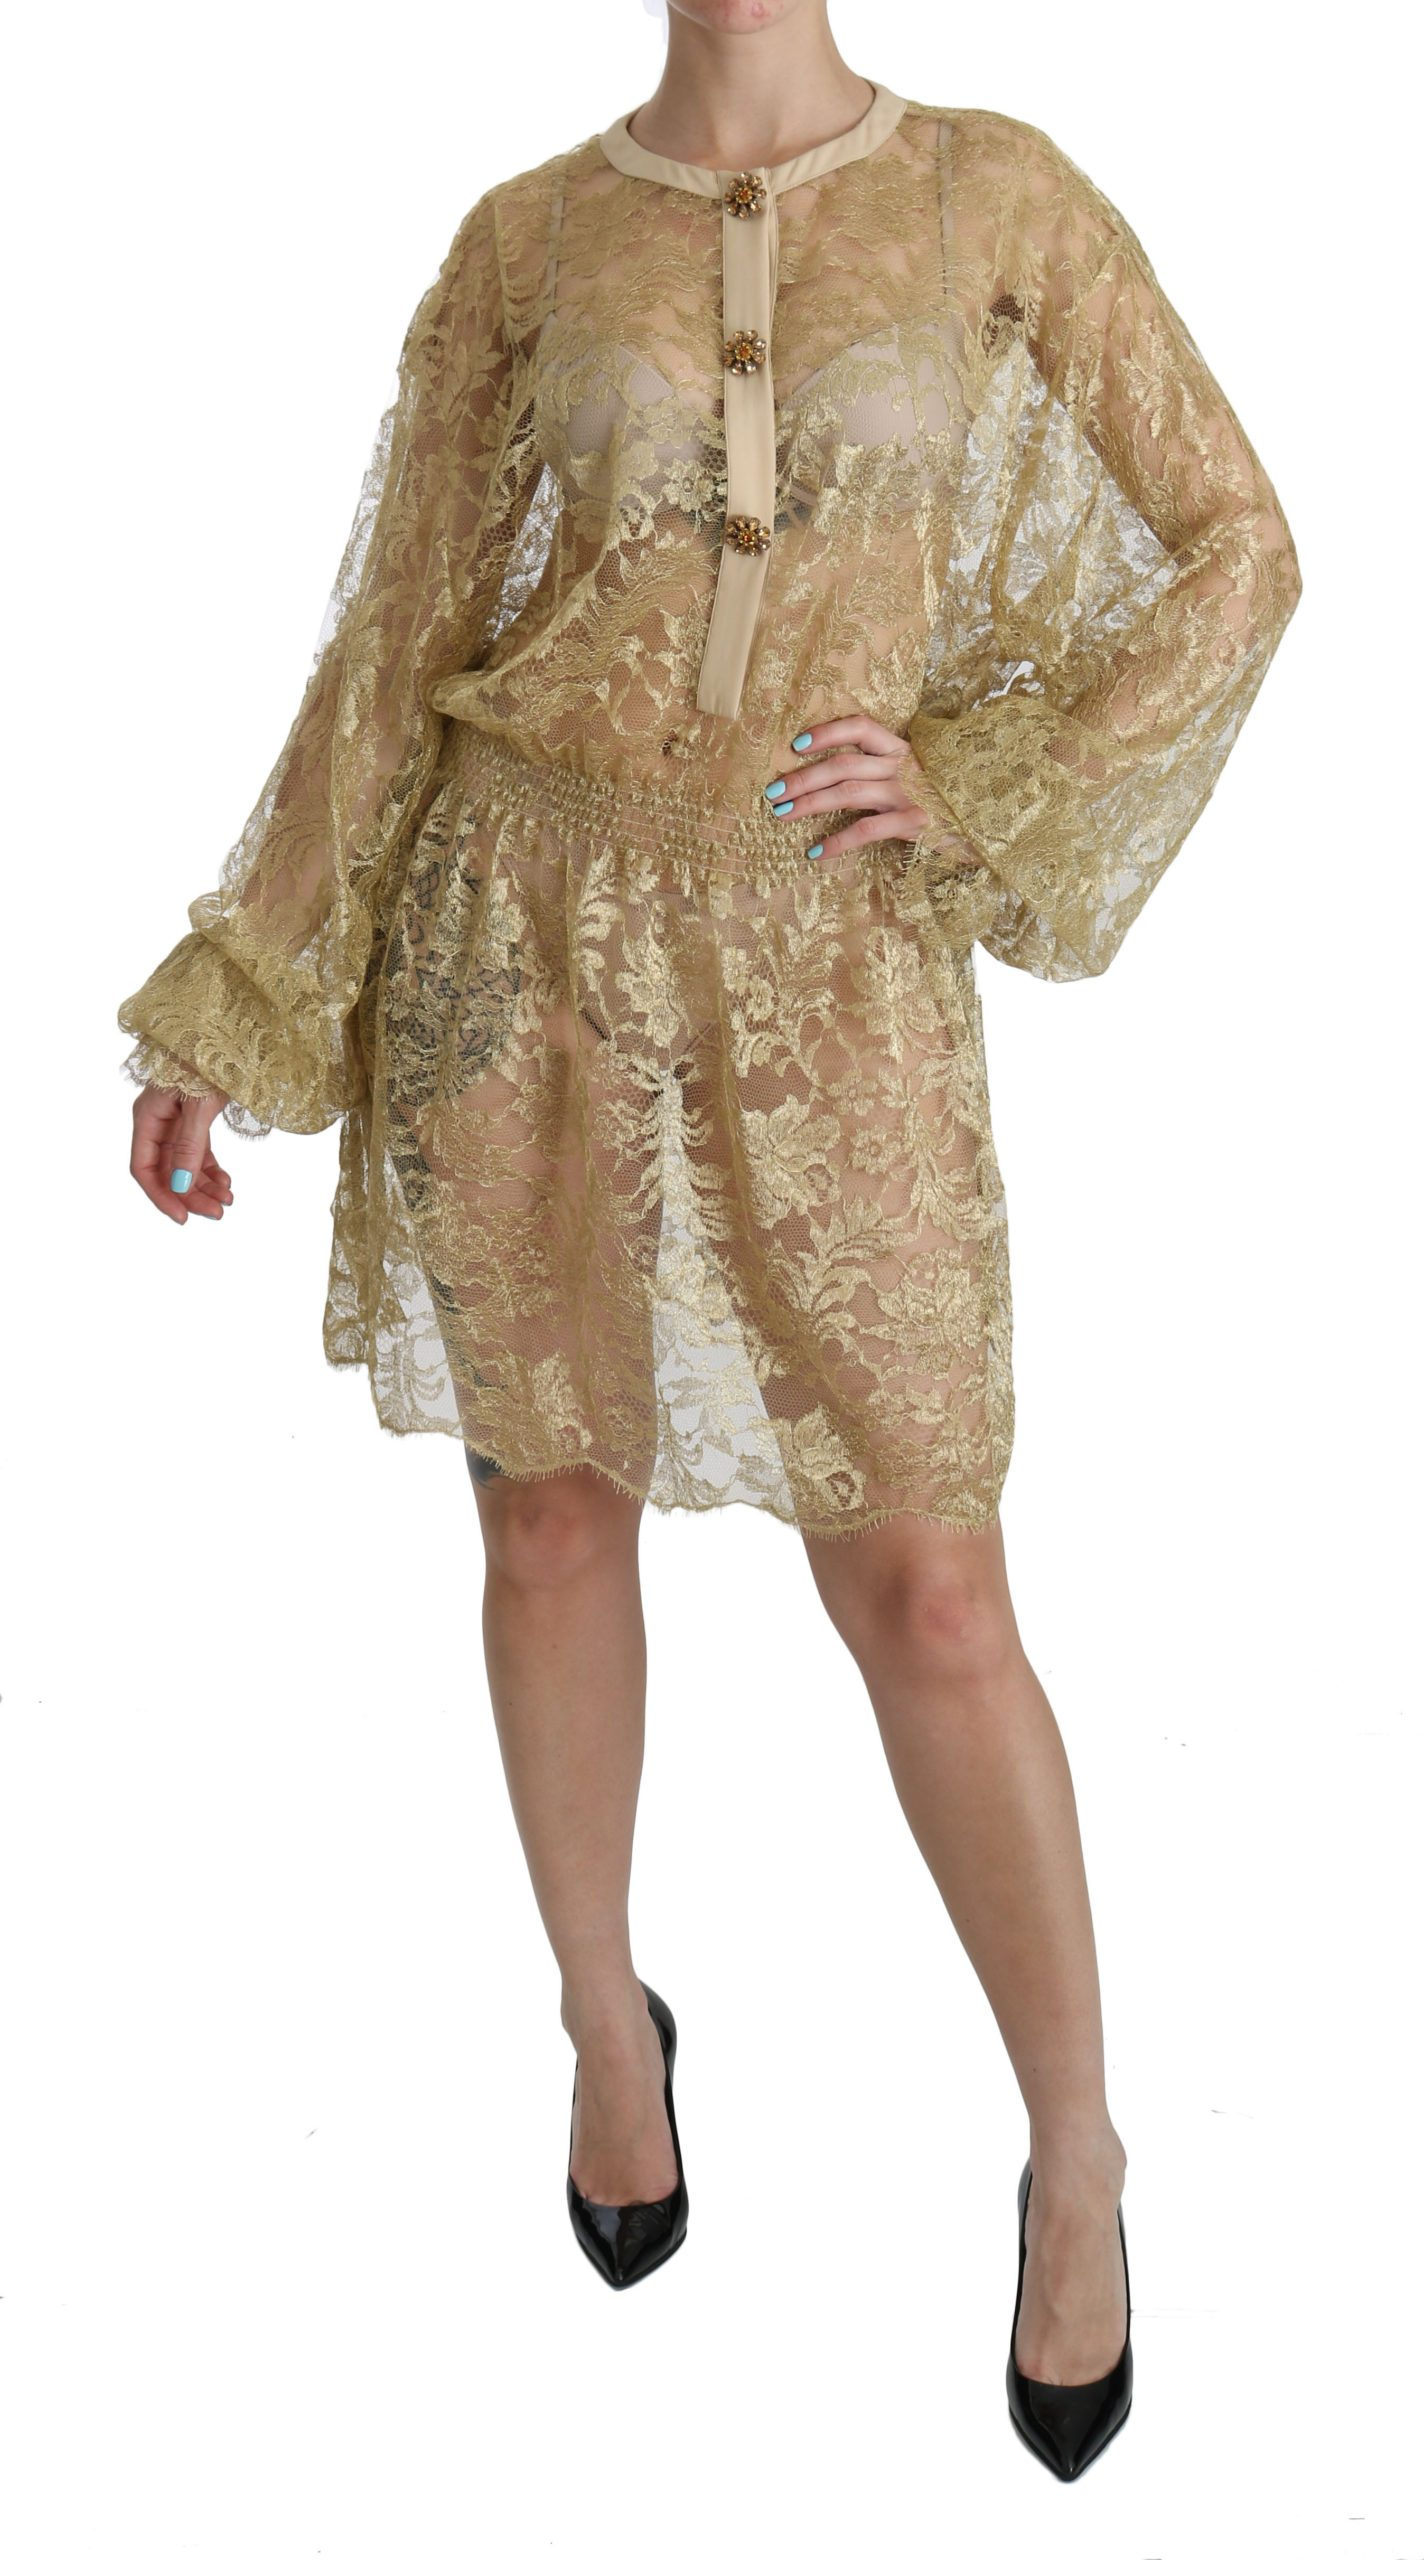 Dolce & Gabbana Women's Lace See Through A-Line Dress Gold Yellow DR2079 - IT40 S